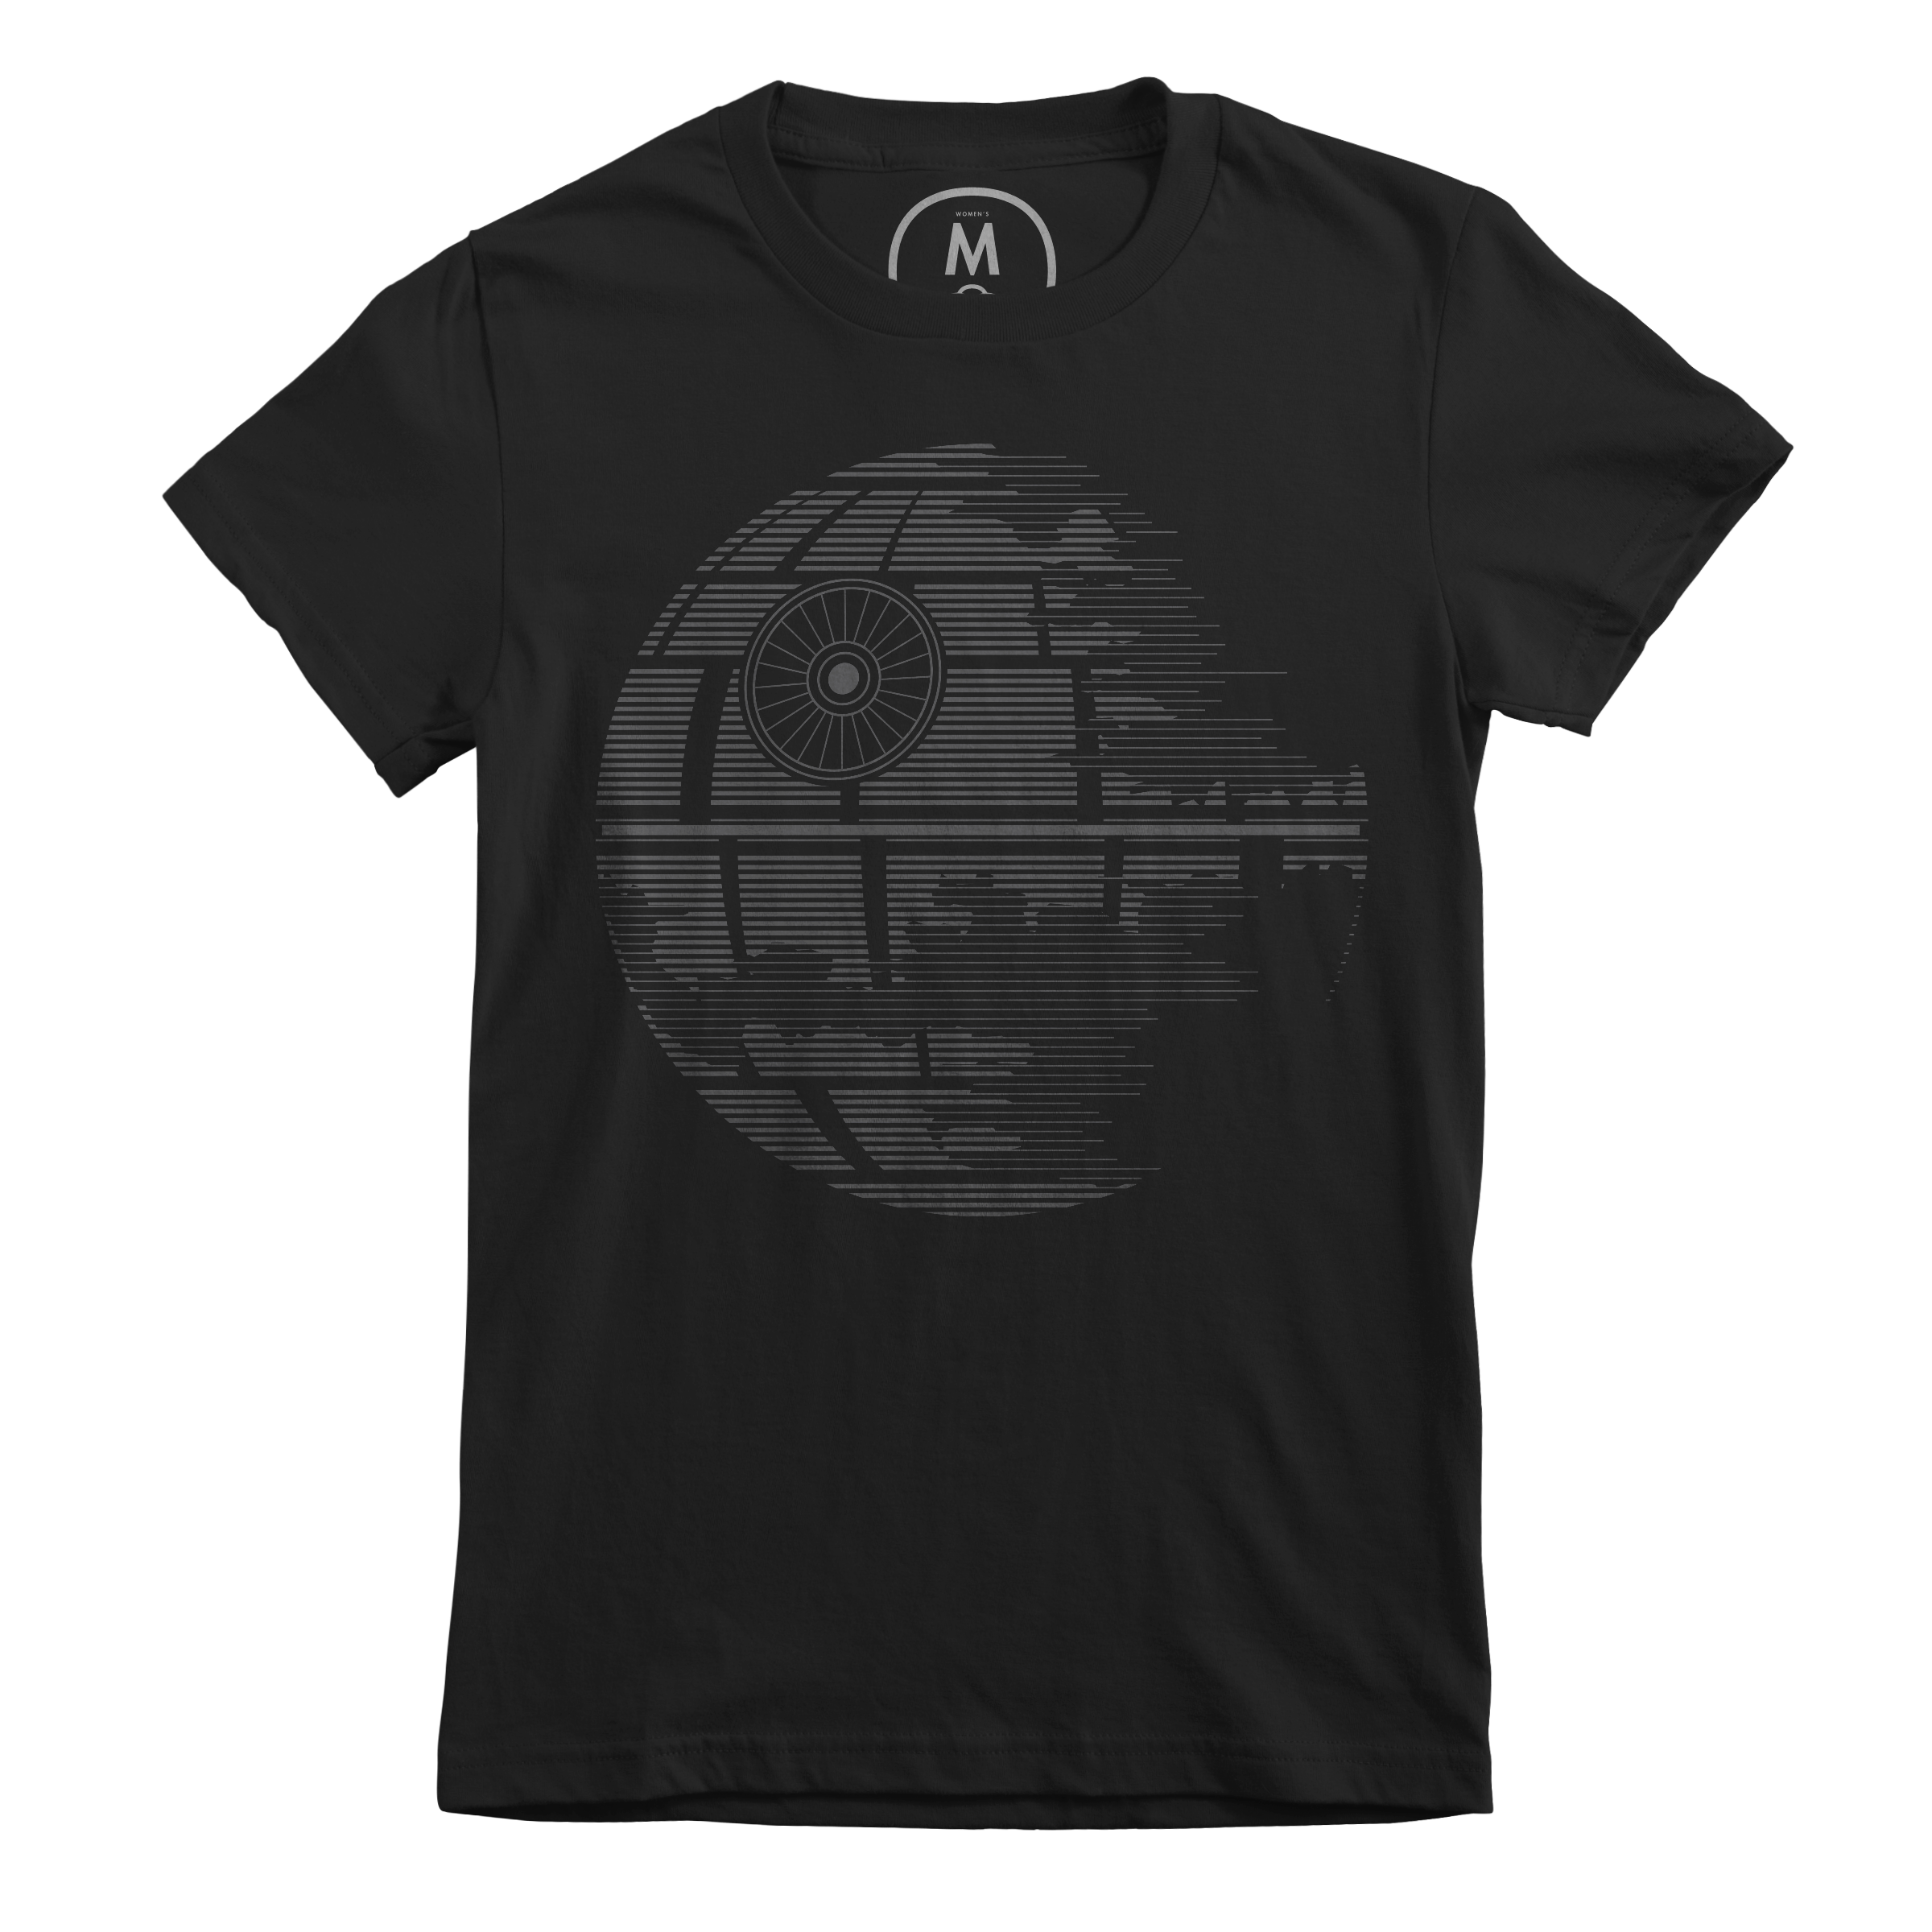 That's No Moon Black (Women's)